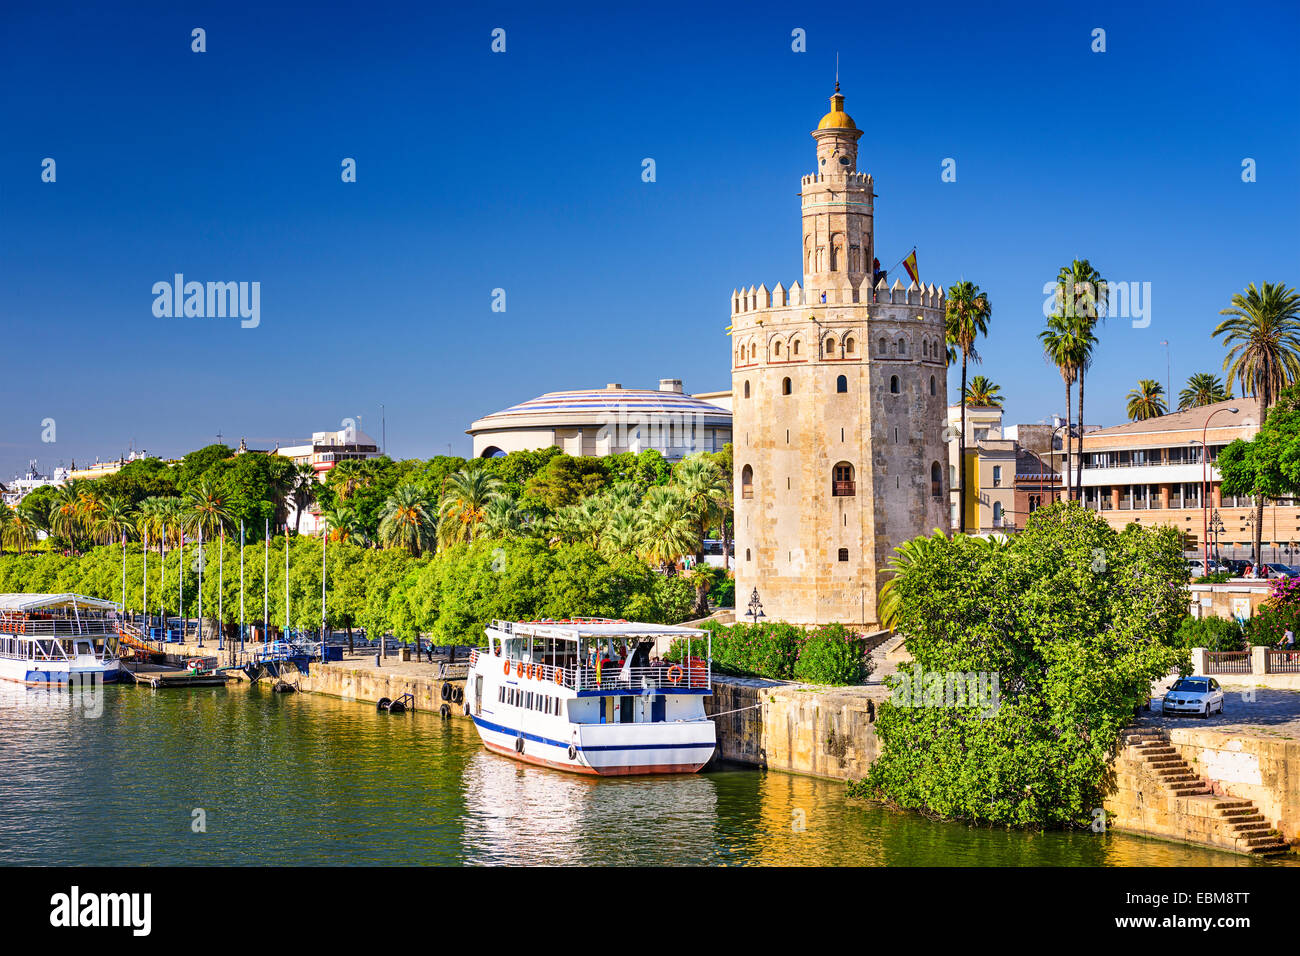 Torre del Oro in Seville, Spain. - Stock Image